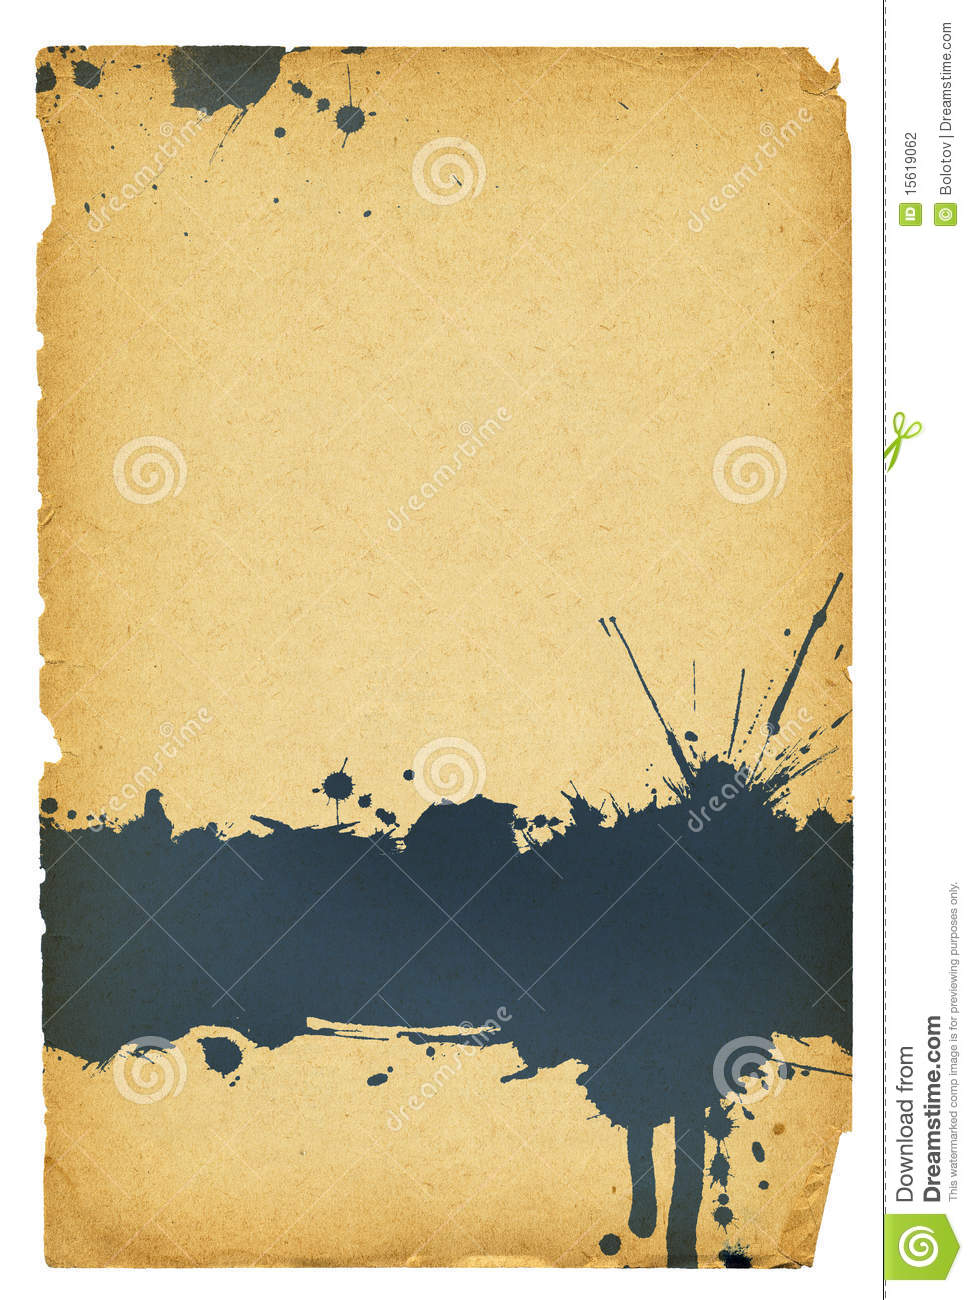 Illustration Decoration Ink Stain On Old Paper With Torn Edges. Stock Photography